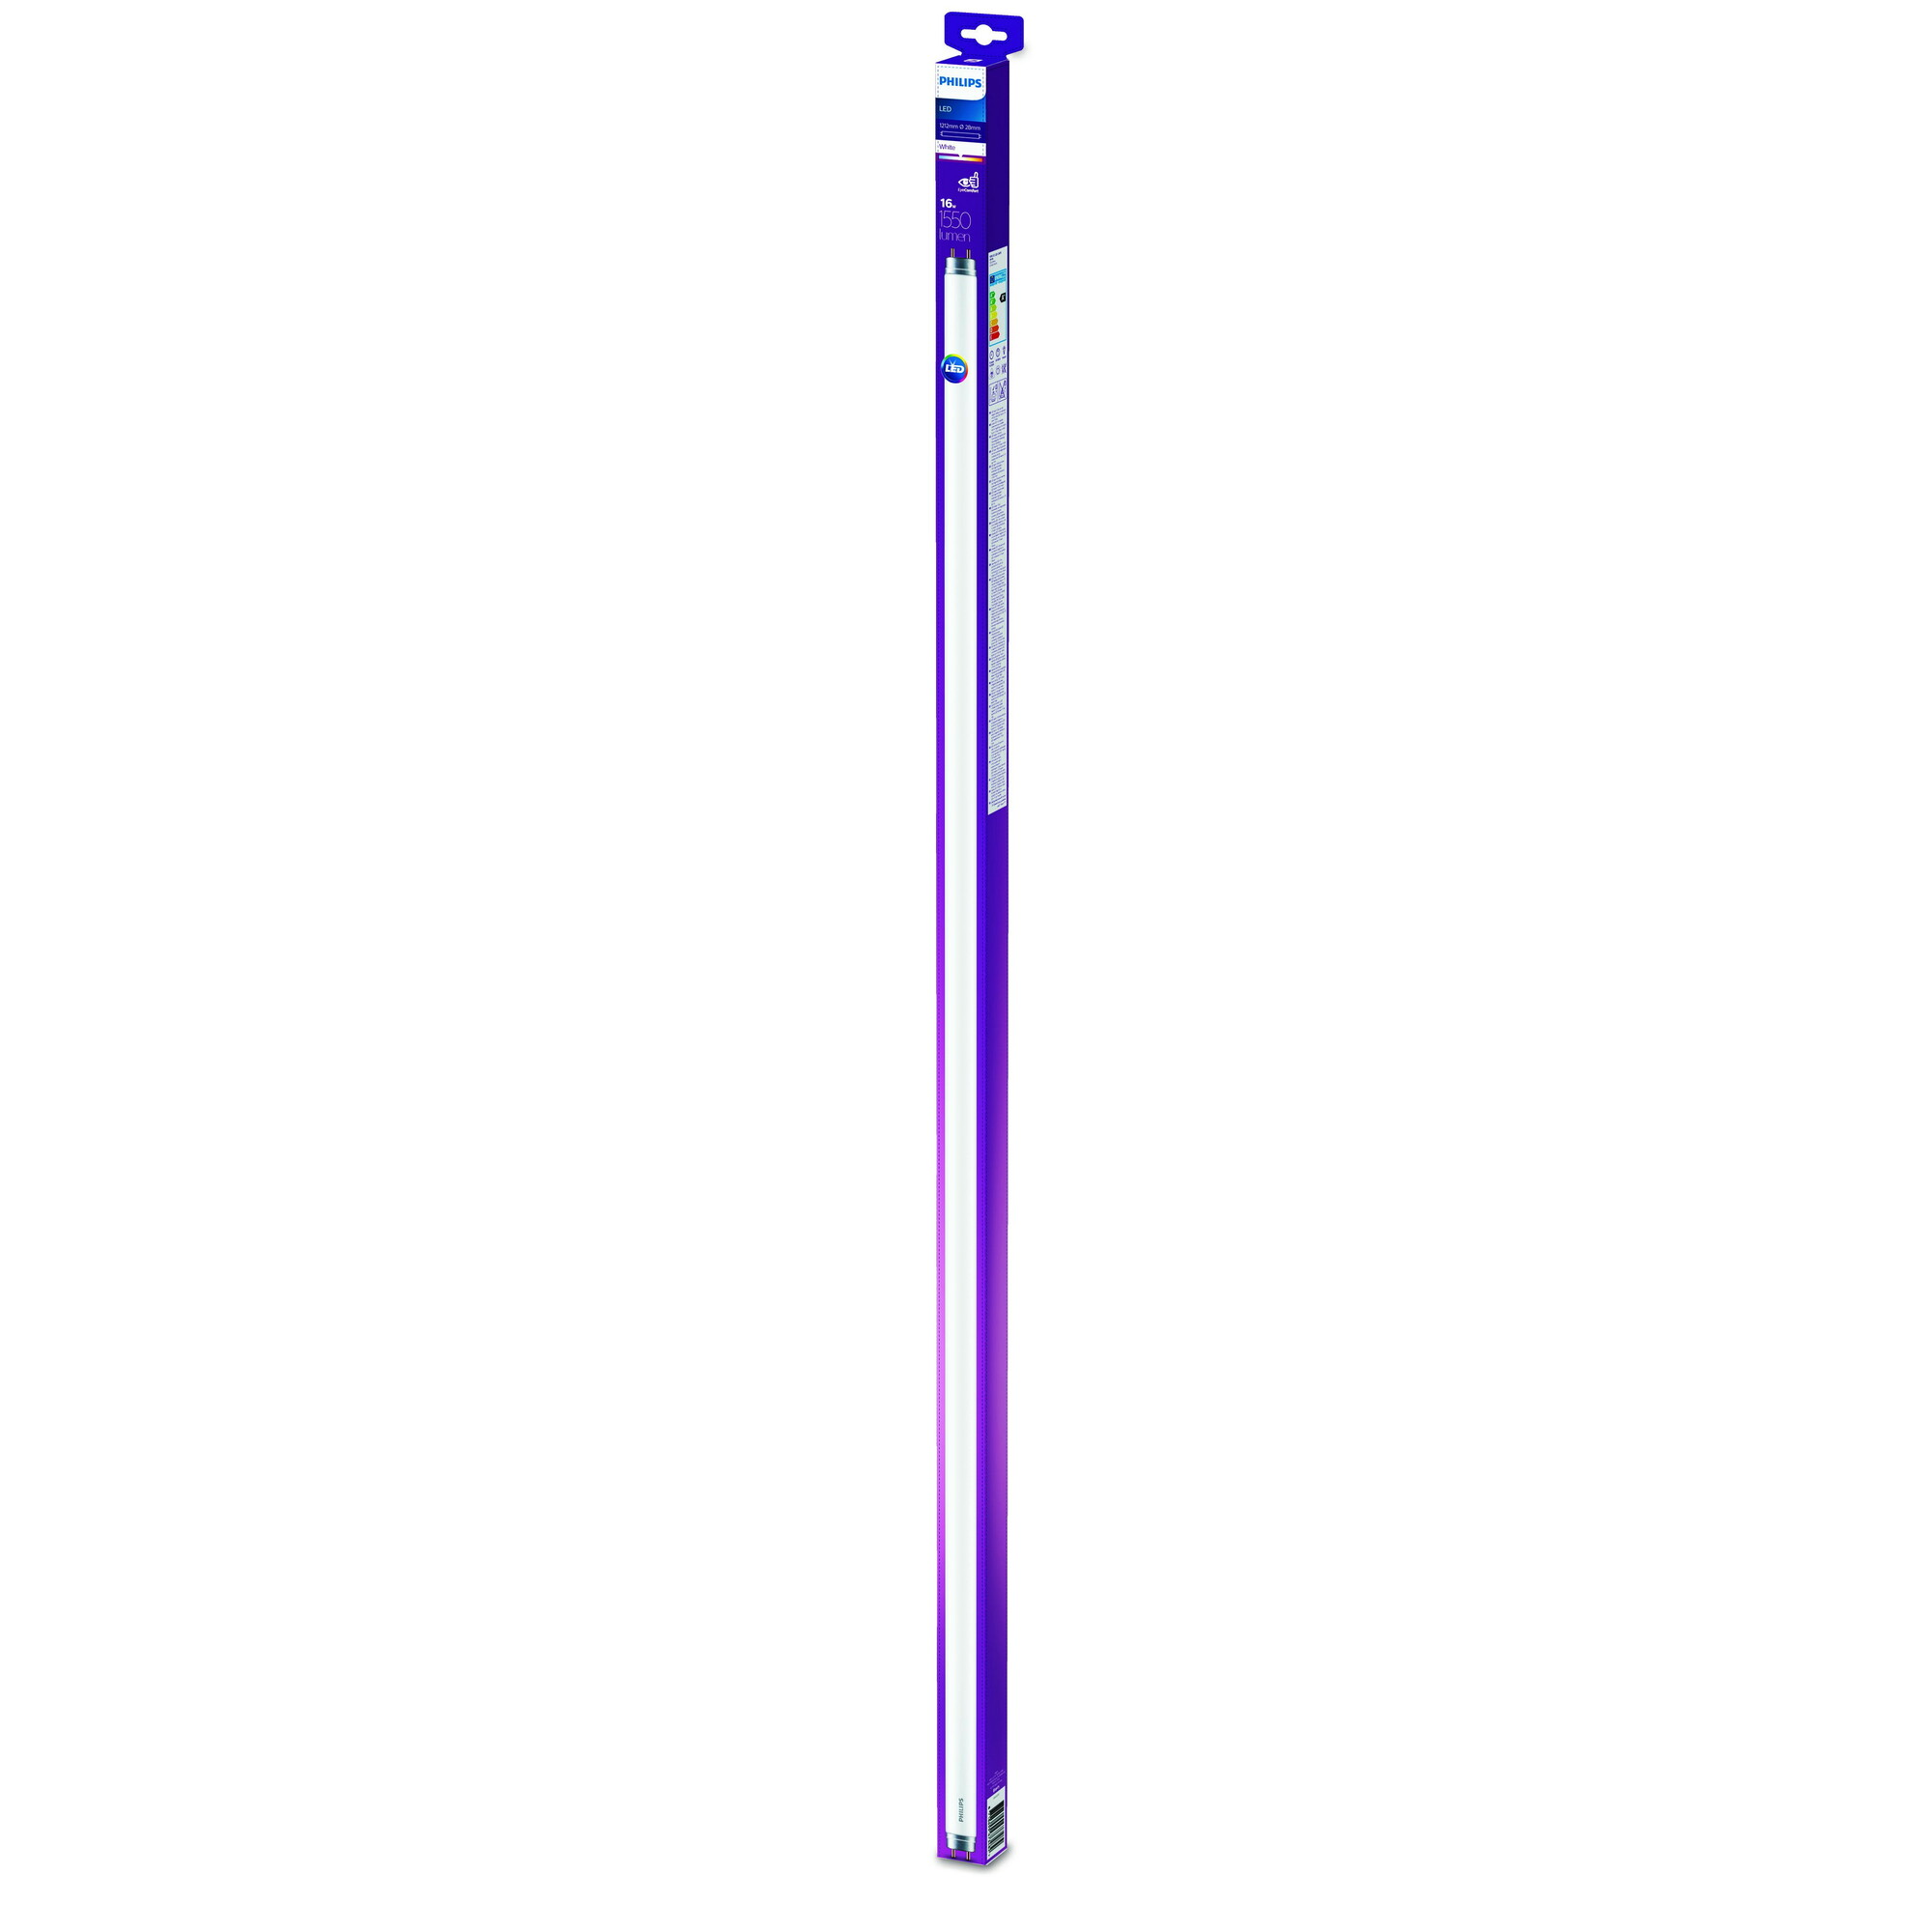 Philips LED T8 G13 16W 1550lm 3000K Tube Frosted